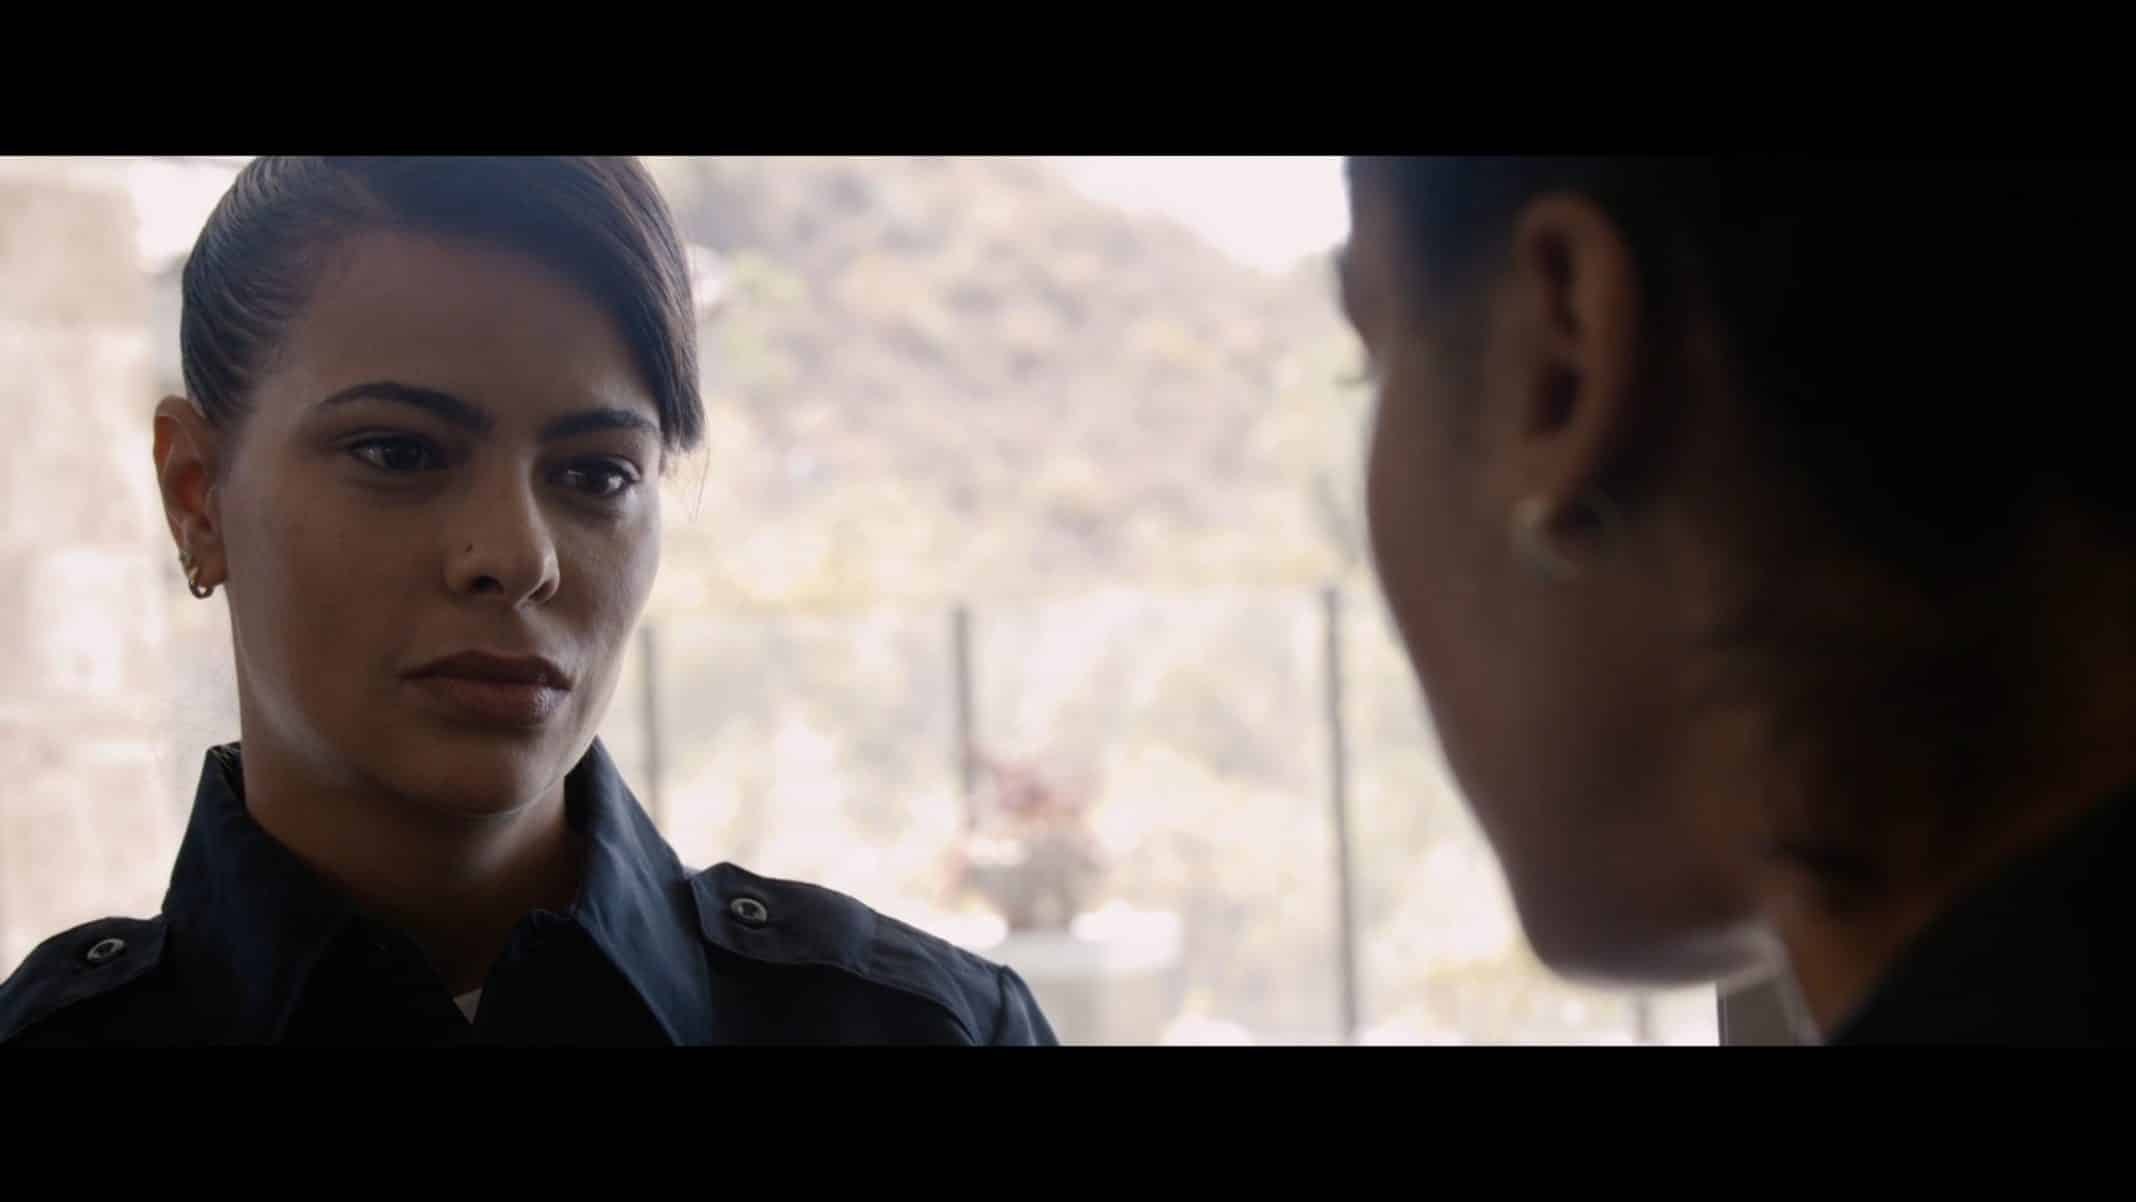 Officer Lopez talking to Erica.